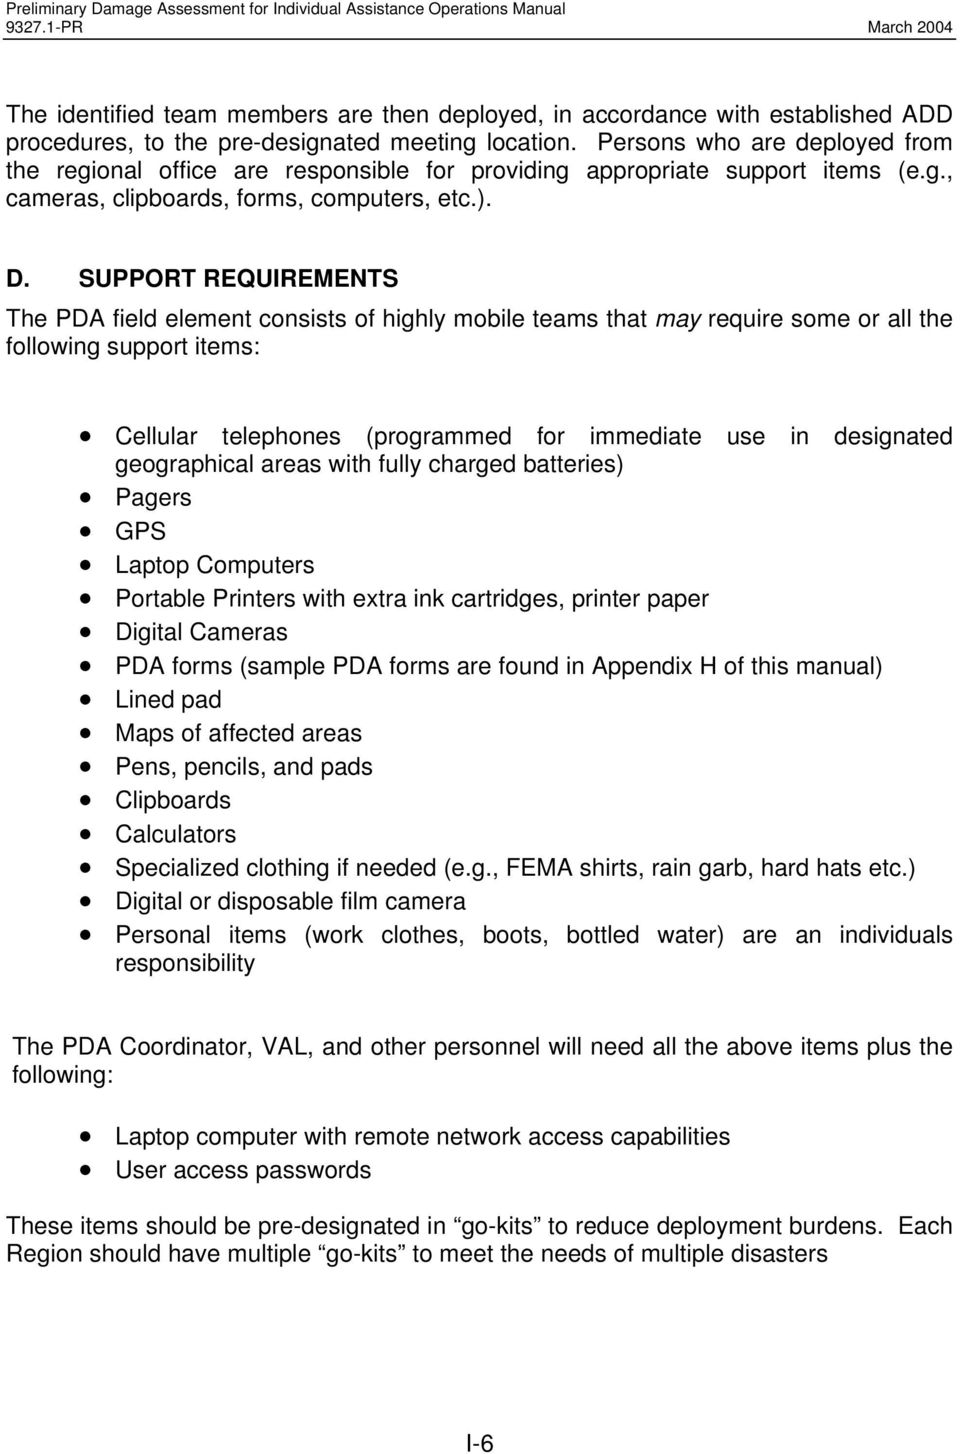 SUPPORT REQUIREMENTS The PDA field element consists of highly mobile teams that may require some or all the following support items: Cellular telephones (programmed for immediate use in designated